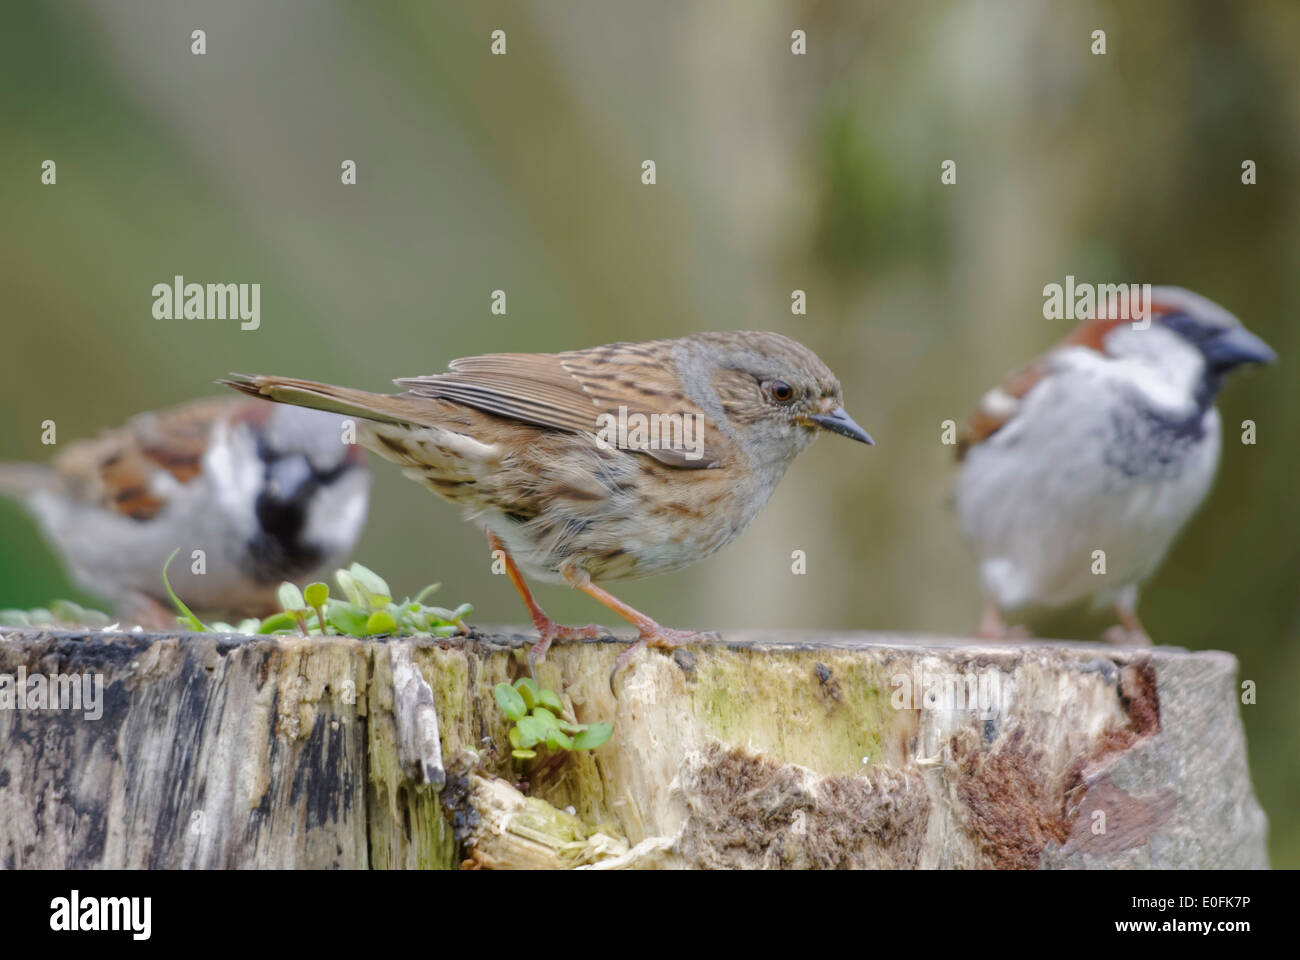 Welsh Garden Birds: two tree sparrows and a dunnock perch on a tree stump - Stock Image